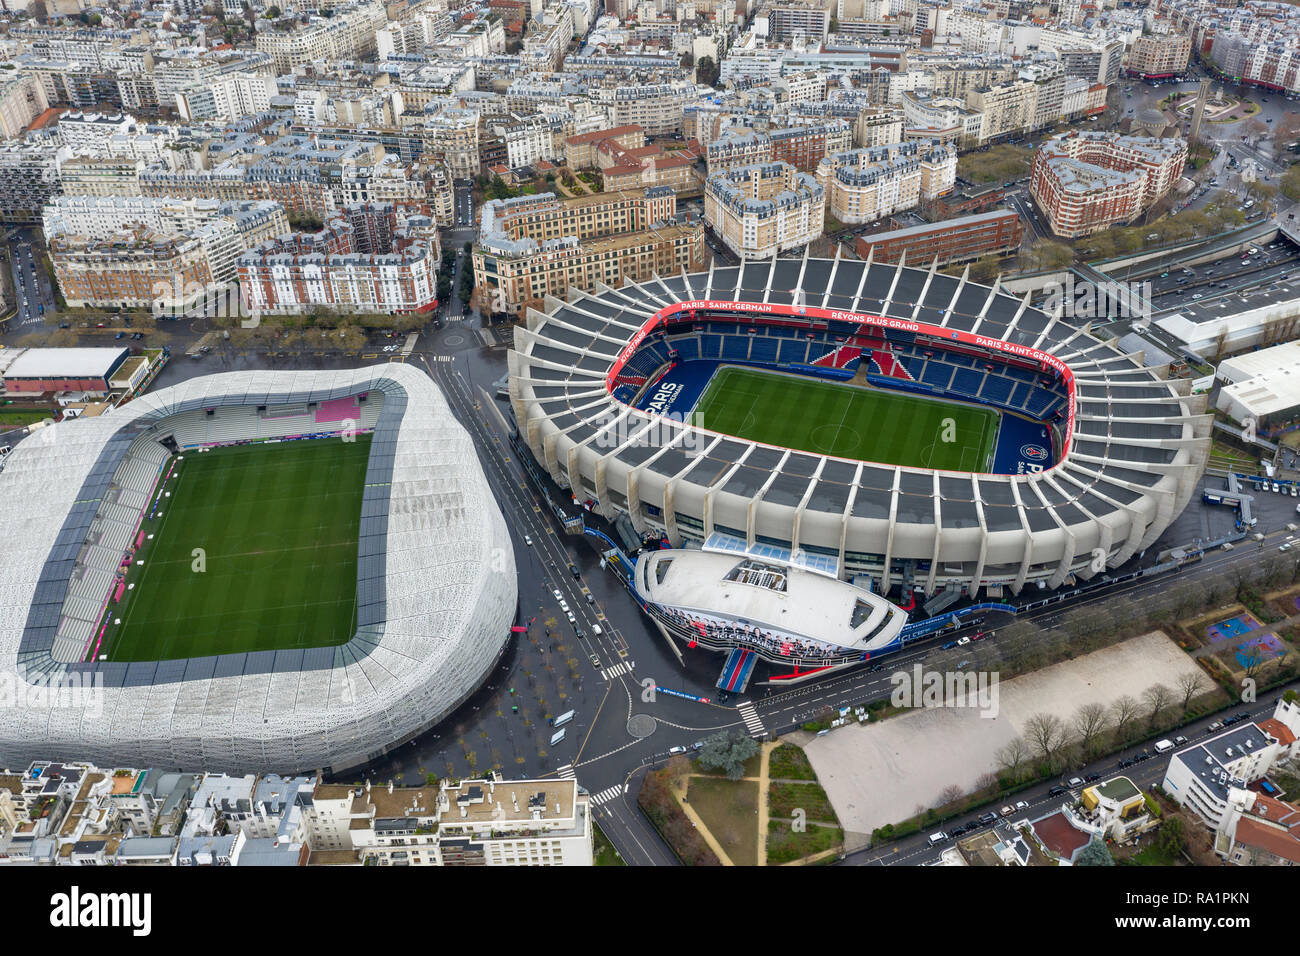 Aerial View Of Le Parc Des Princes Stadium For Soccer Team Paris Saint Germain And Stade Jean Bouin Home Of The Rugby Team In Paris France Stock Photo Alamy